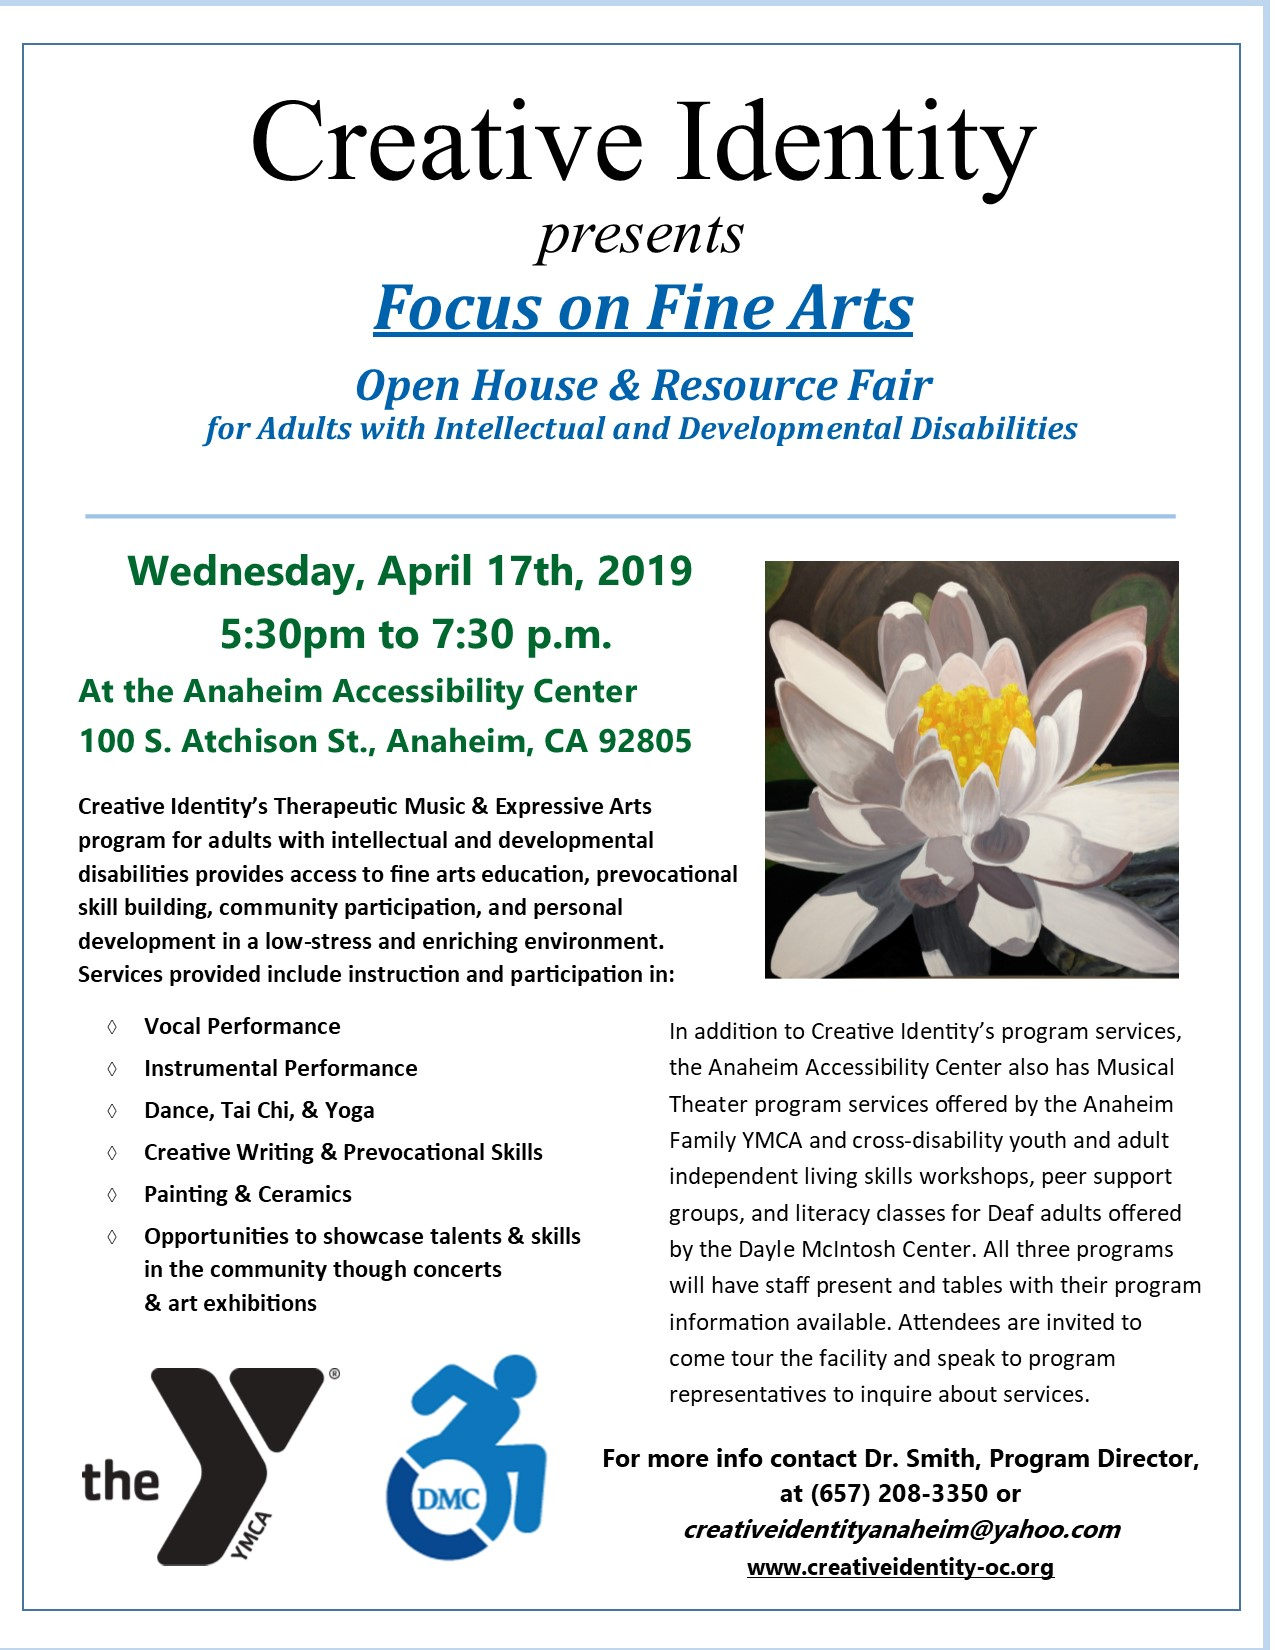 Focus on Fine Arts Flyer 2019.jpg